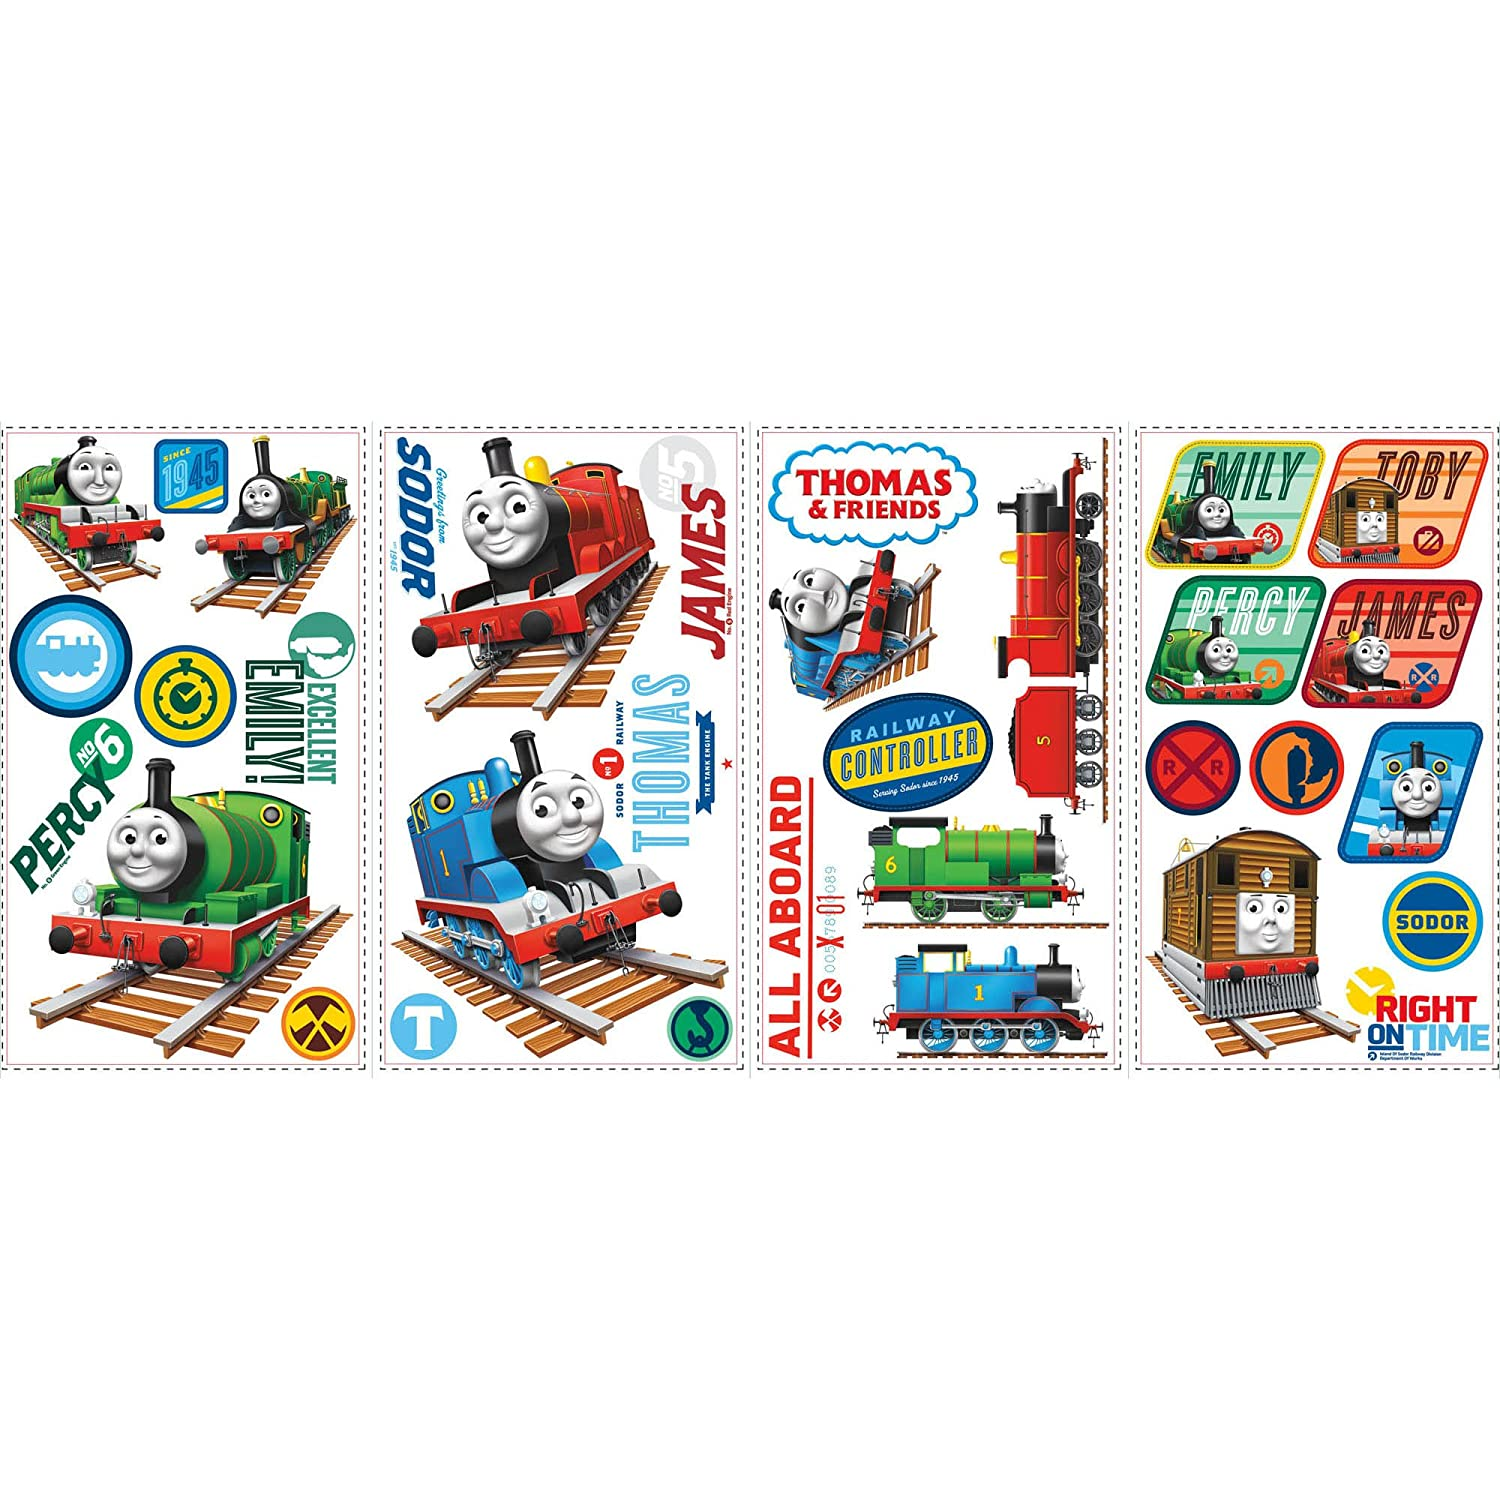 Roommates Rmk1831Scs Thomas The Tank Engine Peel And Stick Wall Decals, 33  Count   Decorative Wall Appliques   Amazon.com Part 9